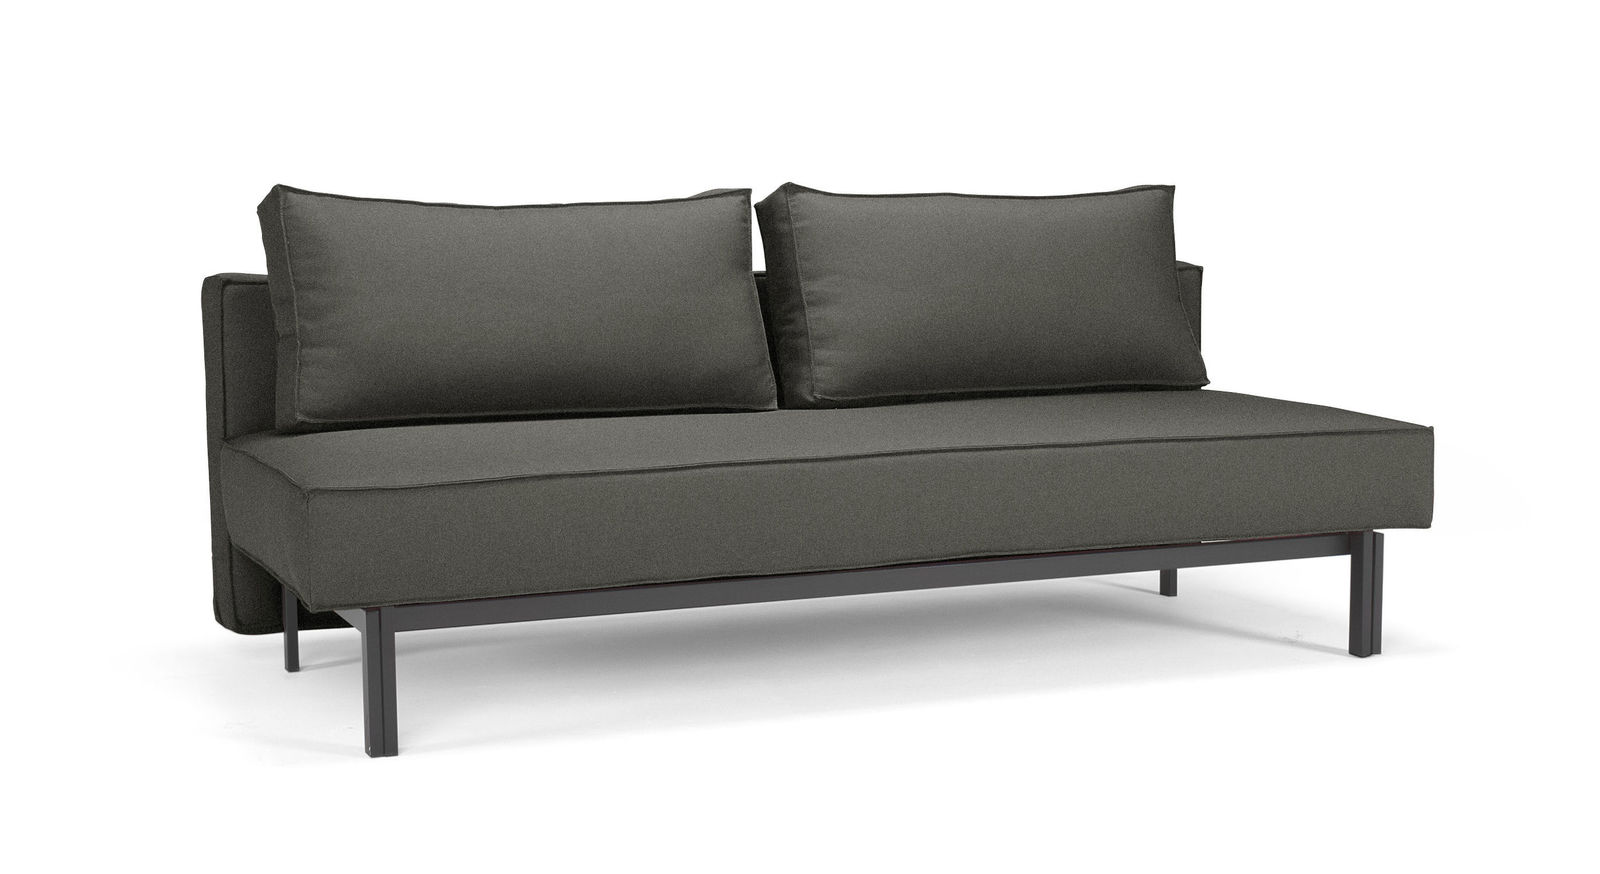 schlafsofa mit federkern und 140x200 cm liegefl che ellwood. Black Bedroom Furniture Sets. Home Design Ideas